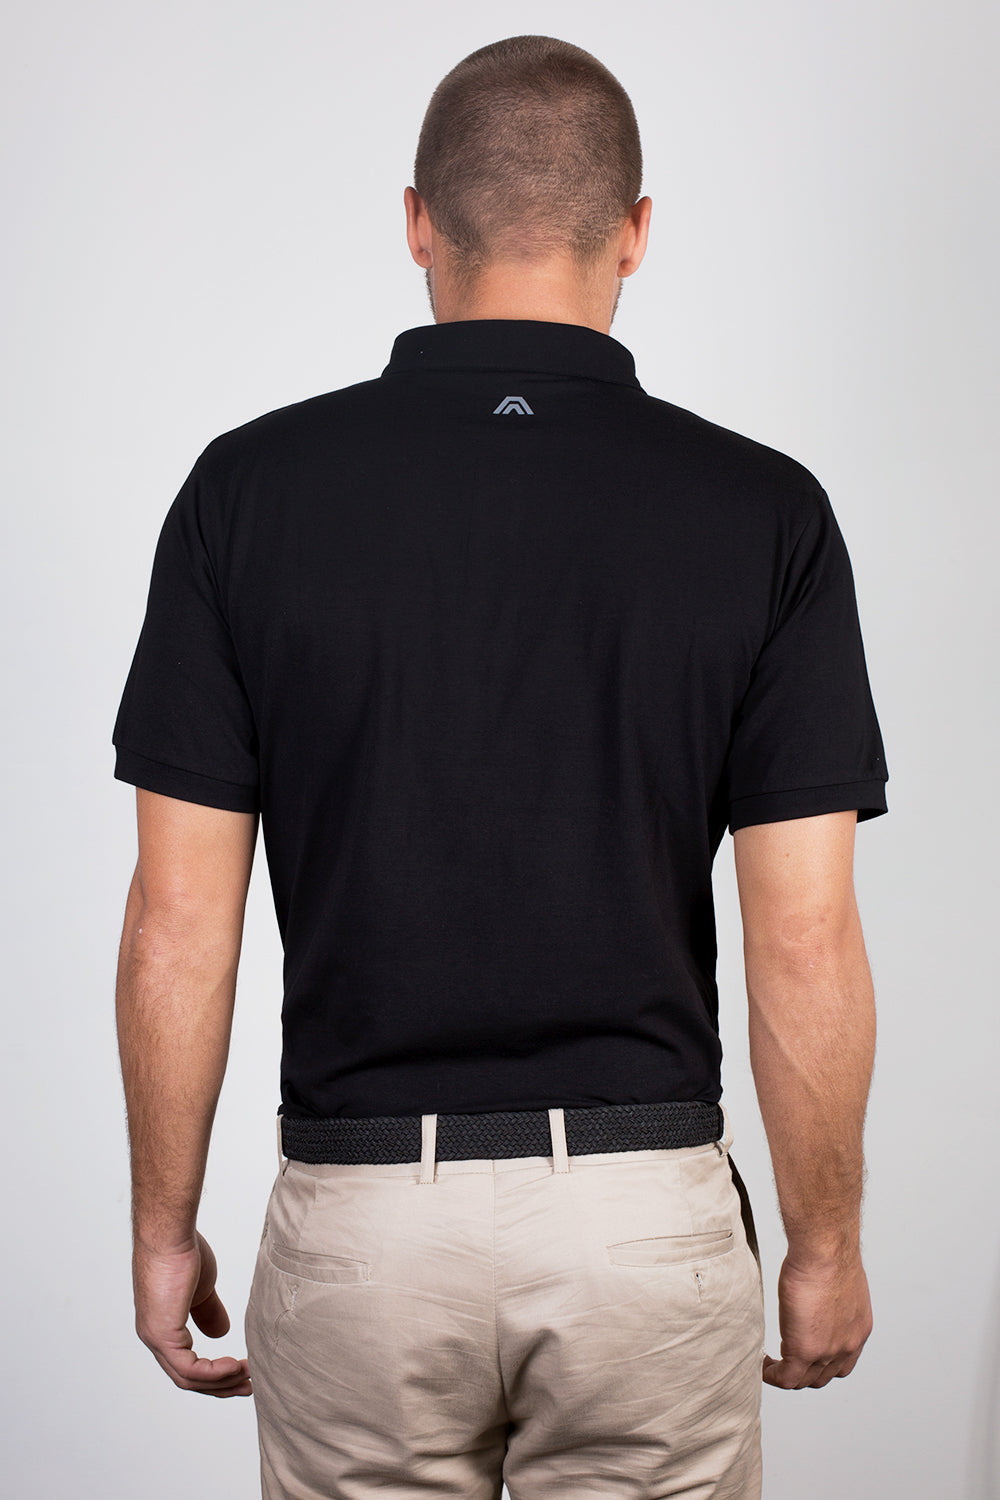 midnight black, aces original, golf apparel, golf clothing, polo, athletic fit, premium quality, style fused with performance, affordable, aces